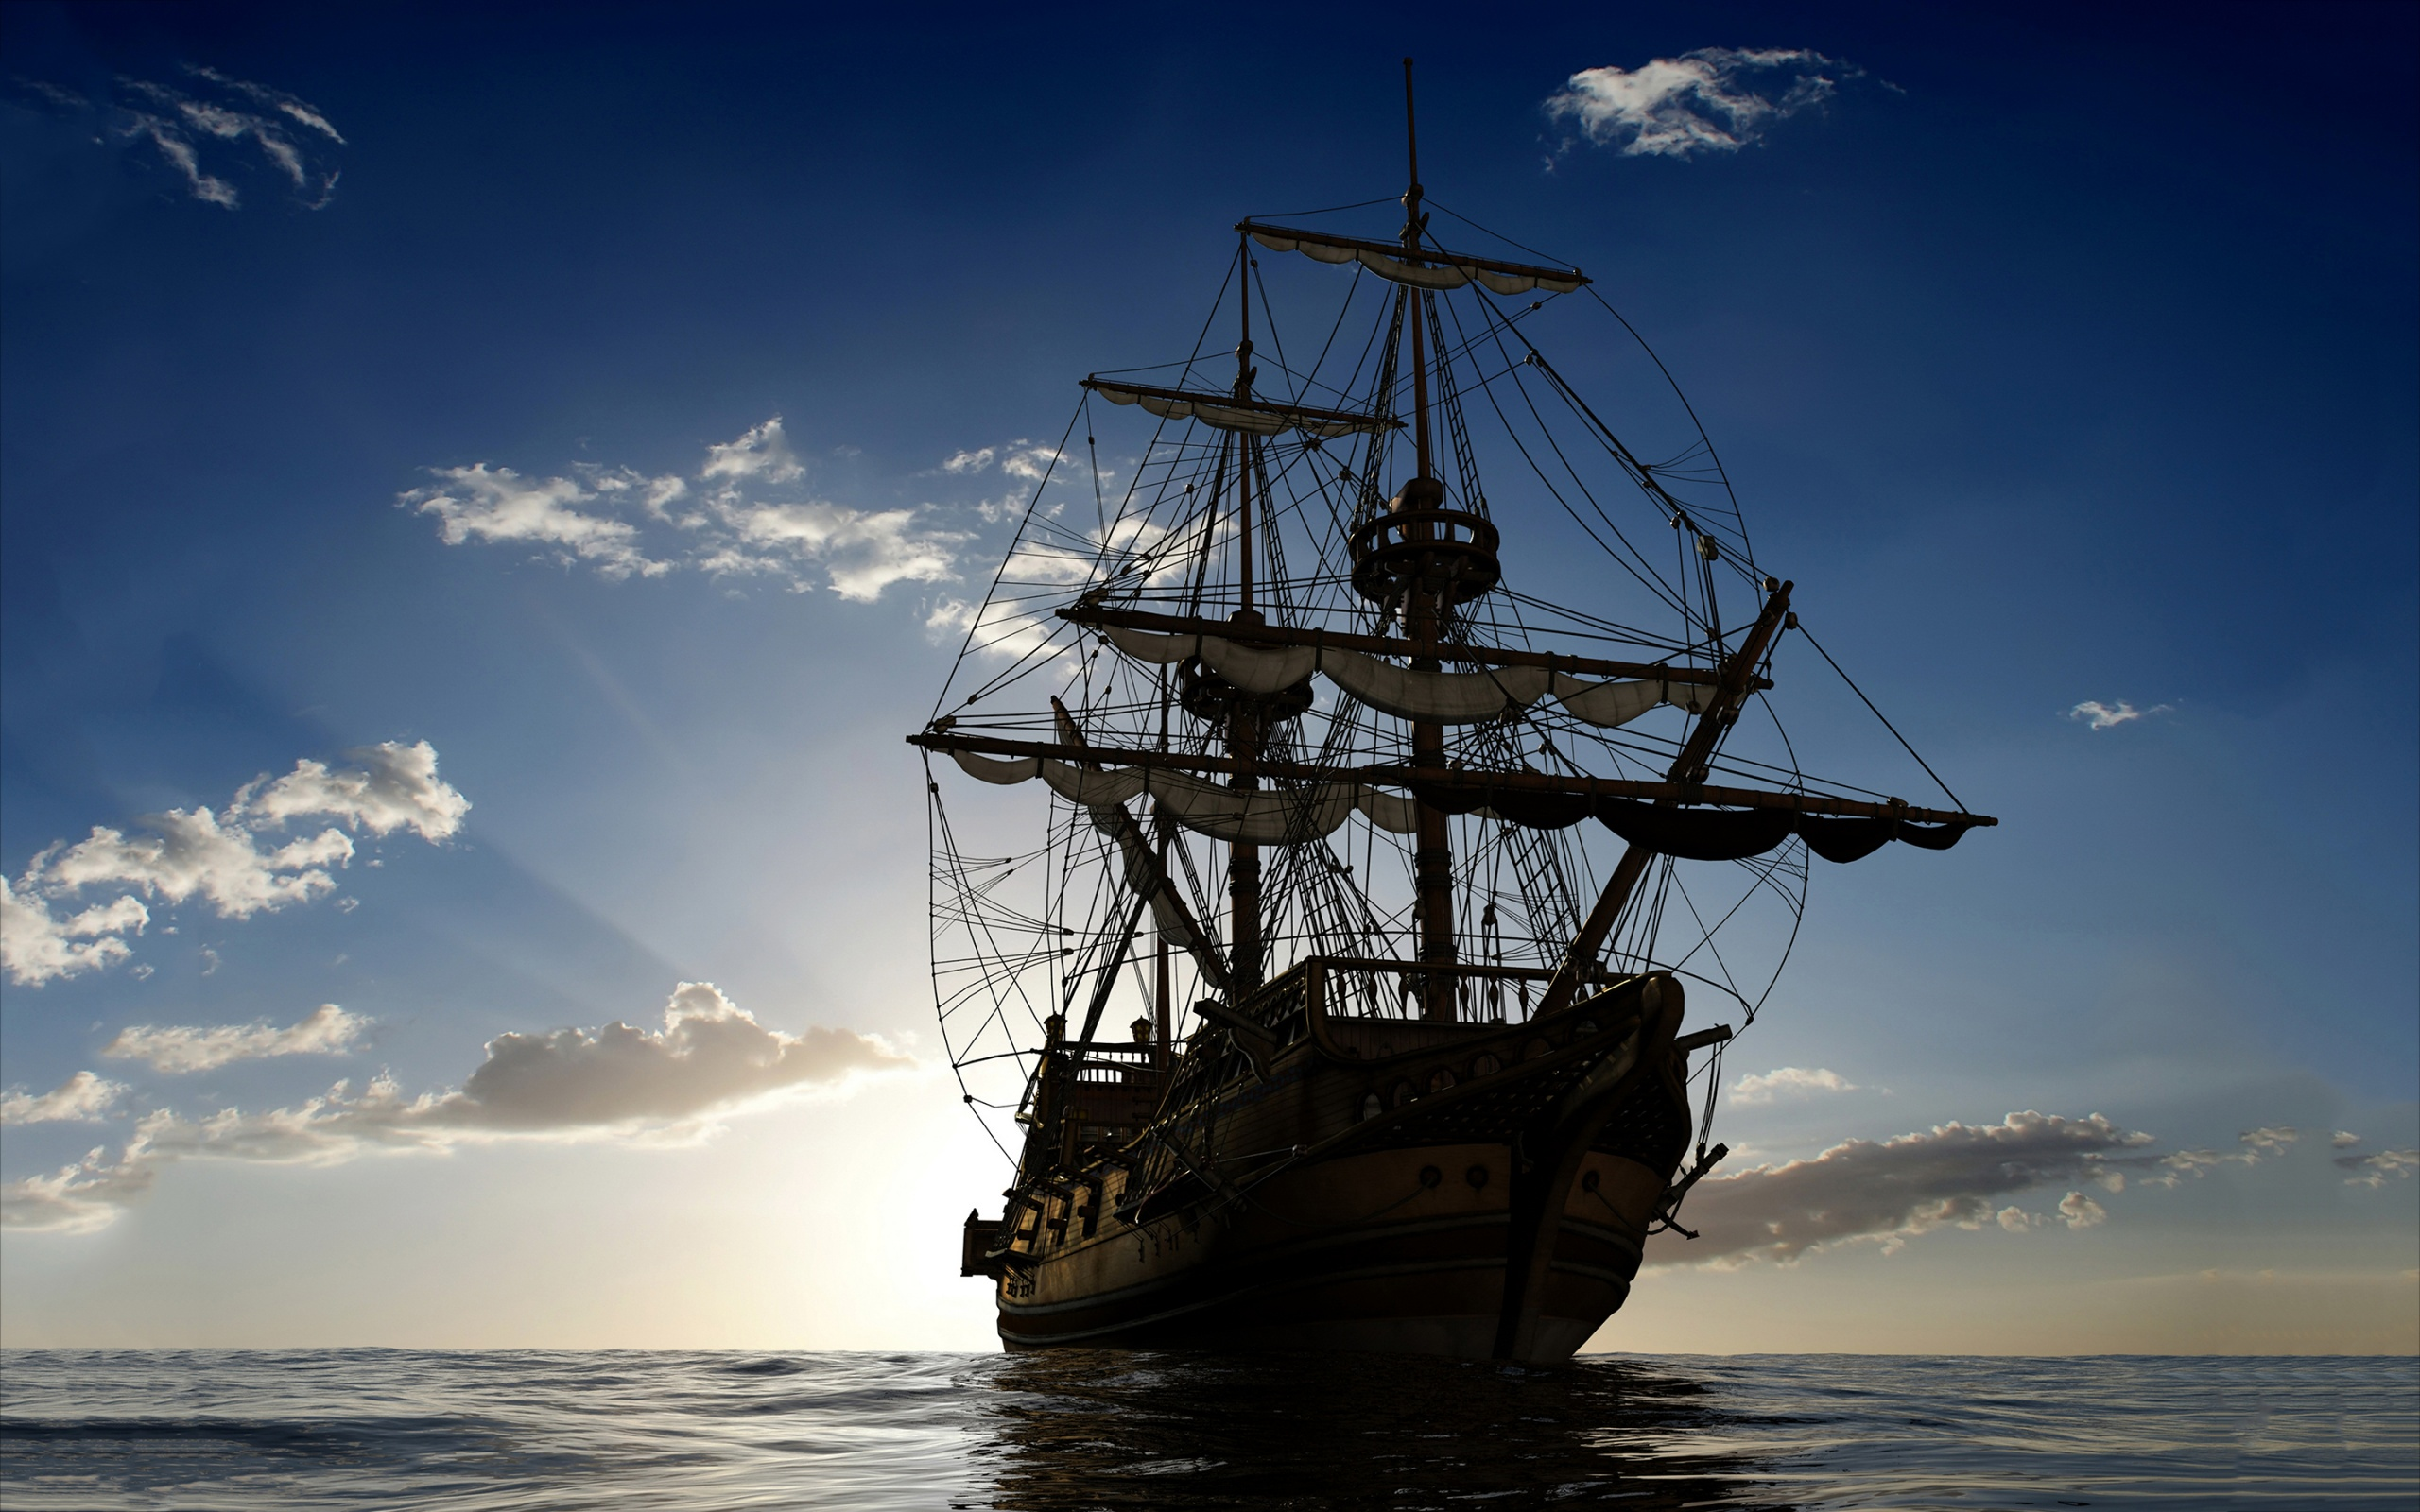 sailing-ship-ocean-2560x1600 | wallpaper.wiki